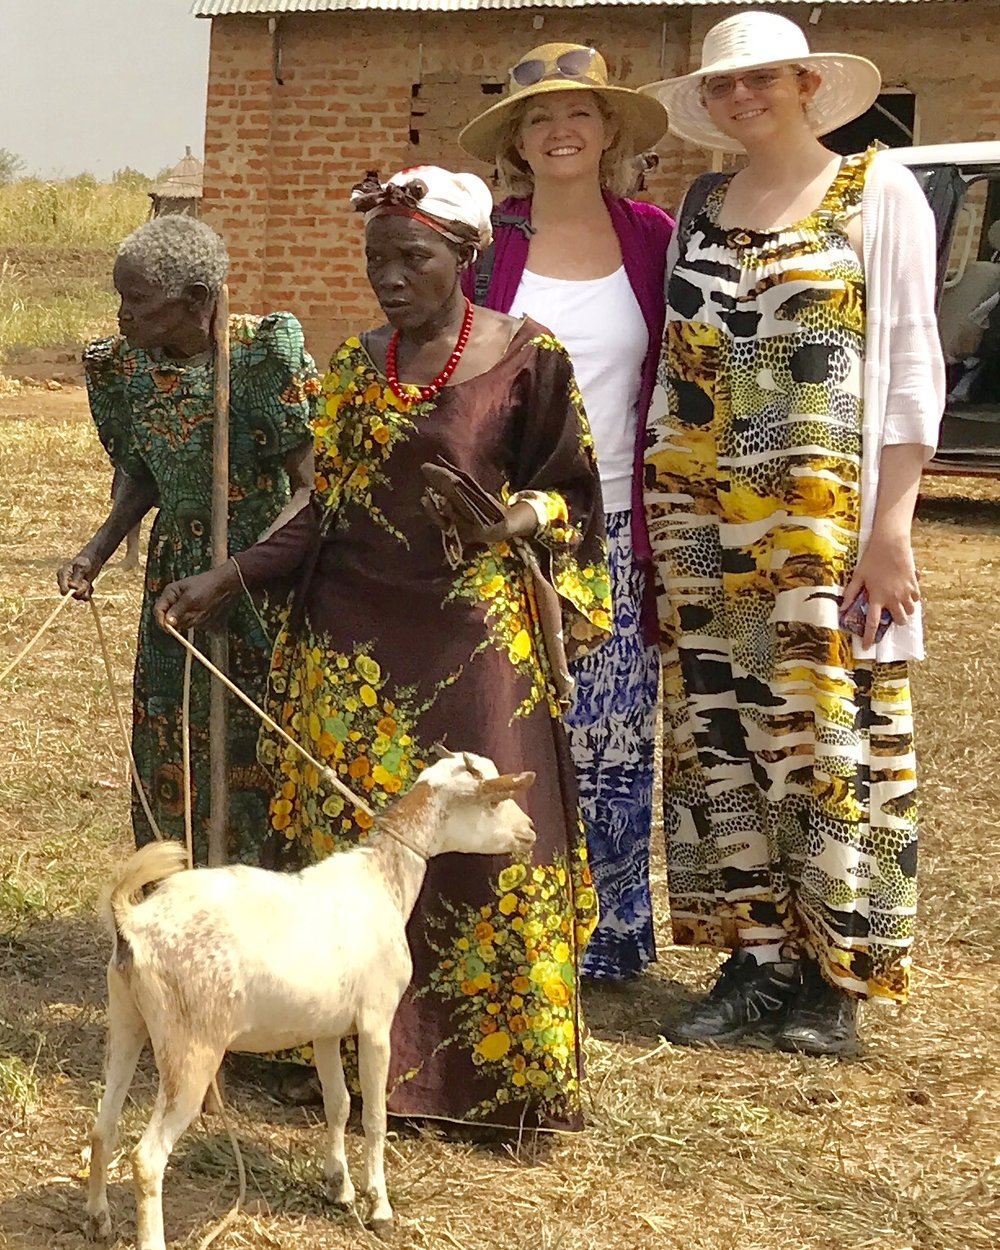 Tobi (middle right) and her daughter (right) posing with new beneficiaries and their goats.